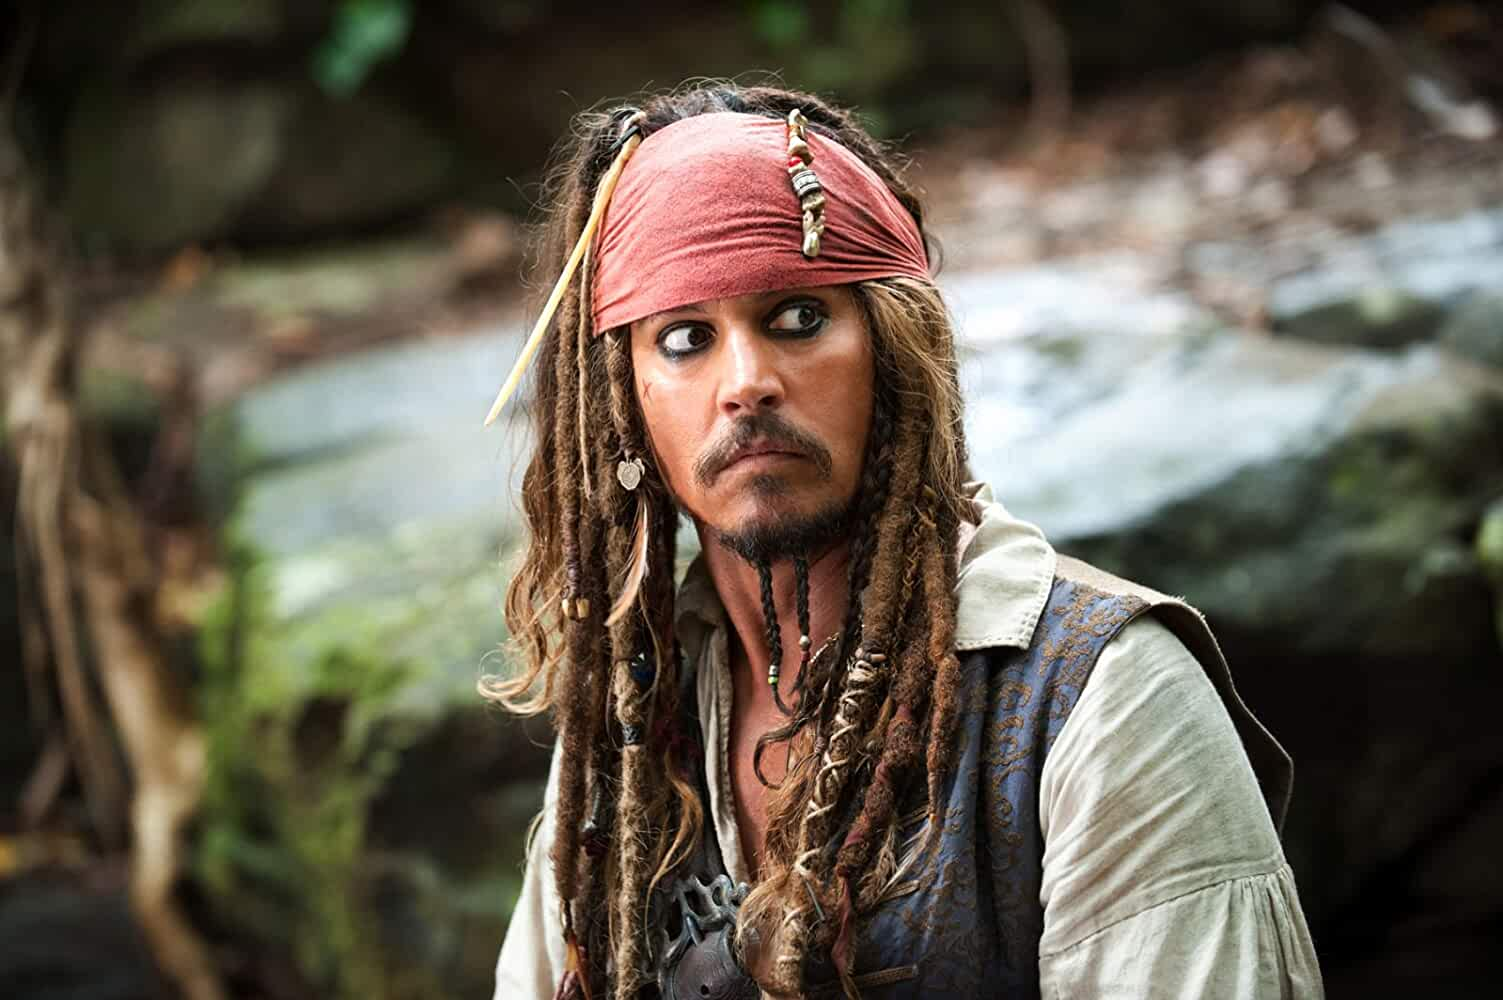 Johnny Depp in Pirates of the Caribbean On Stranger Tides 2011